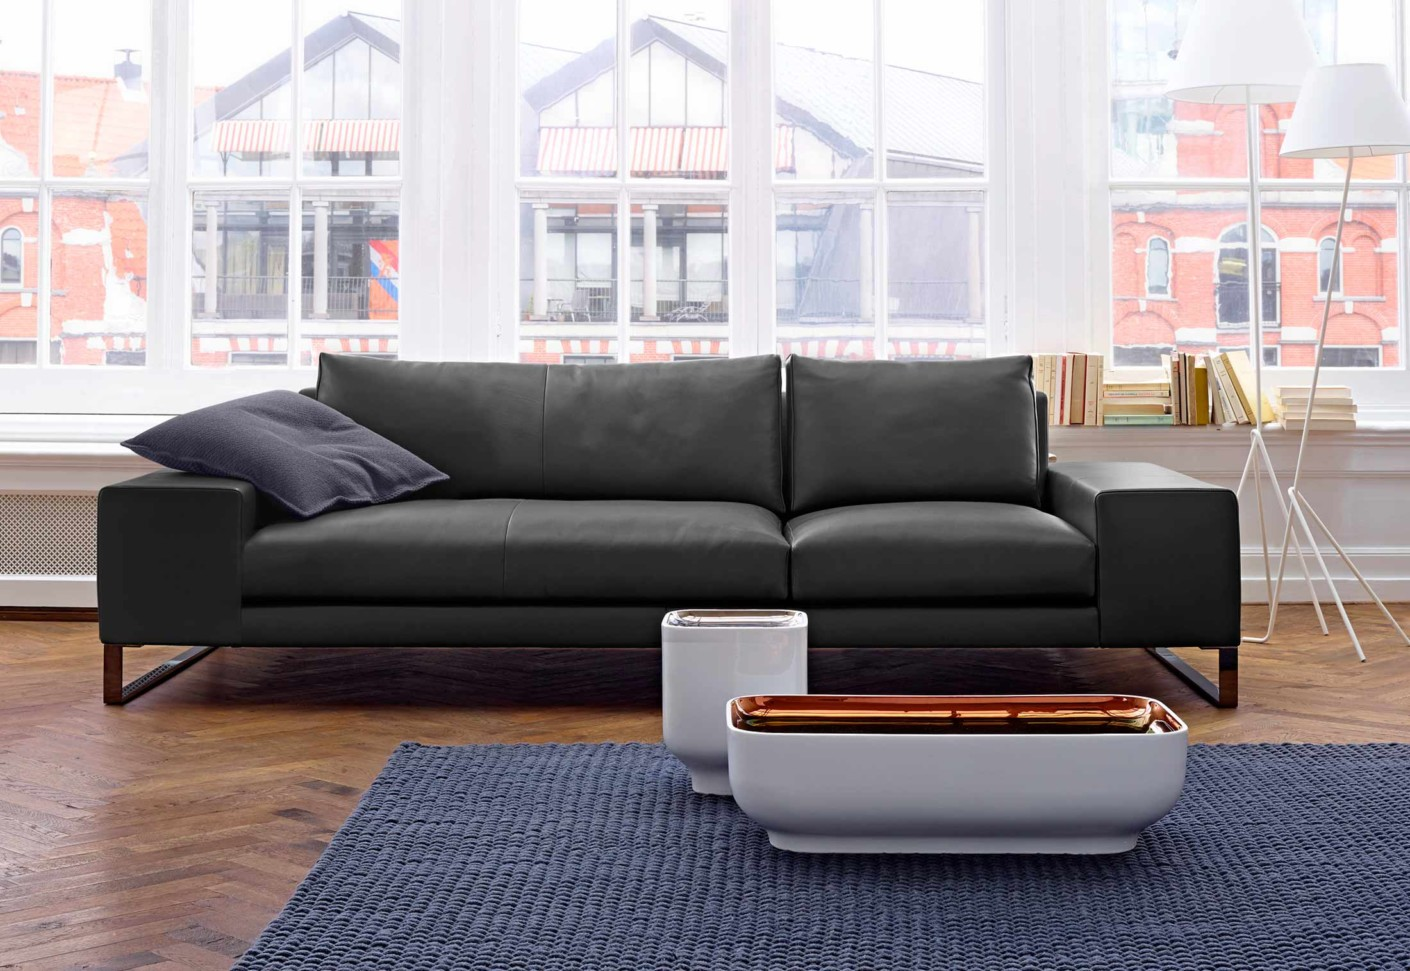 Calanque Side Table By Ligne Roset Stylepark